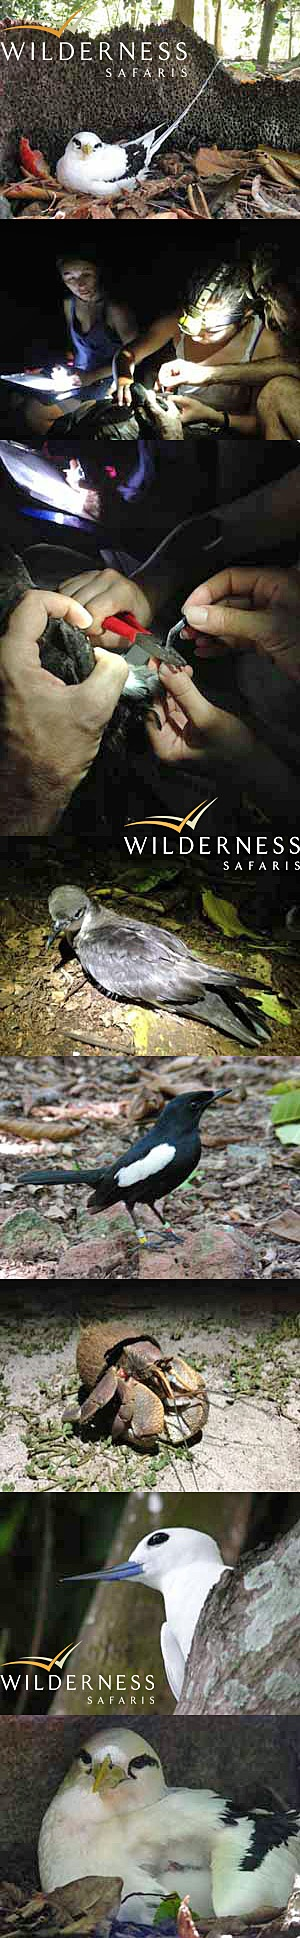 We Are Wilderness - Javier Cotín, Environment Officer of North Island, recently visited Aride in the company of Dr. Gerard Rocamora, to join the monitoring of their shearwater colony and get to know a future North Islander, the Seychelles Magpie Robin. Click on the image for the full story.